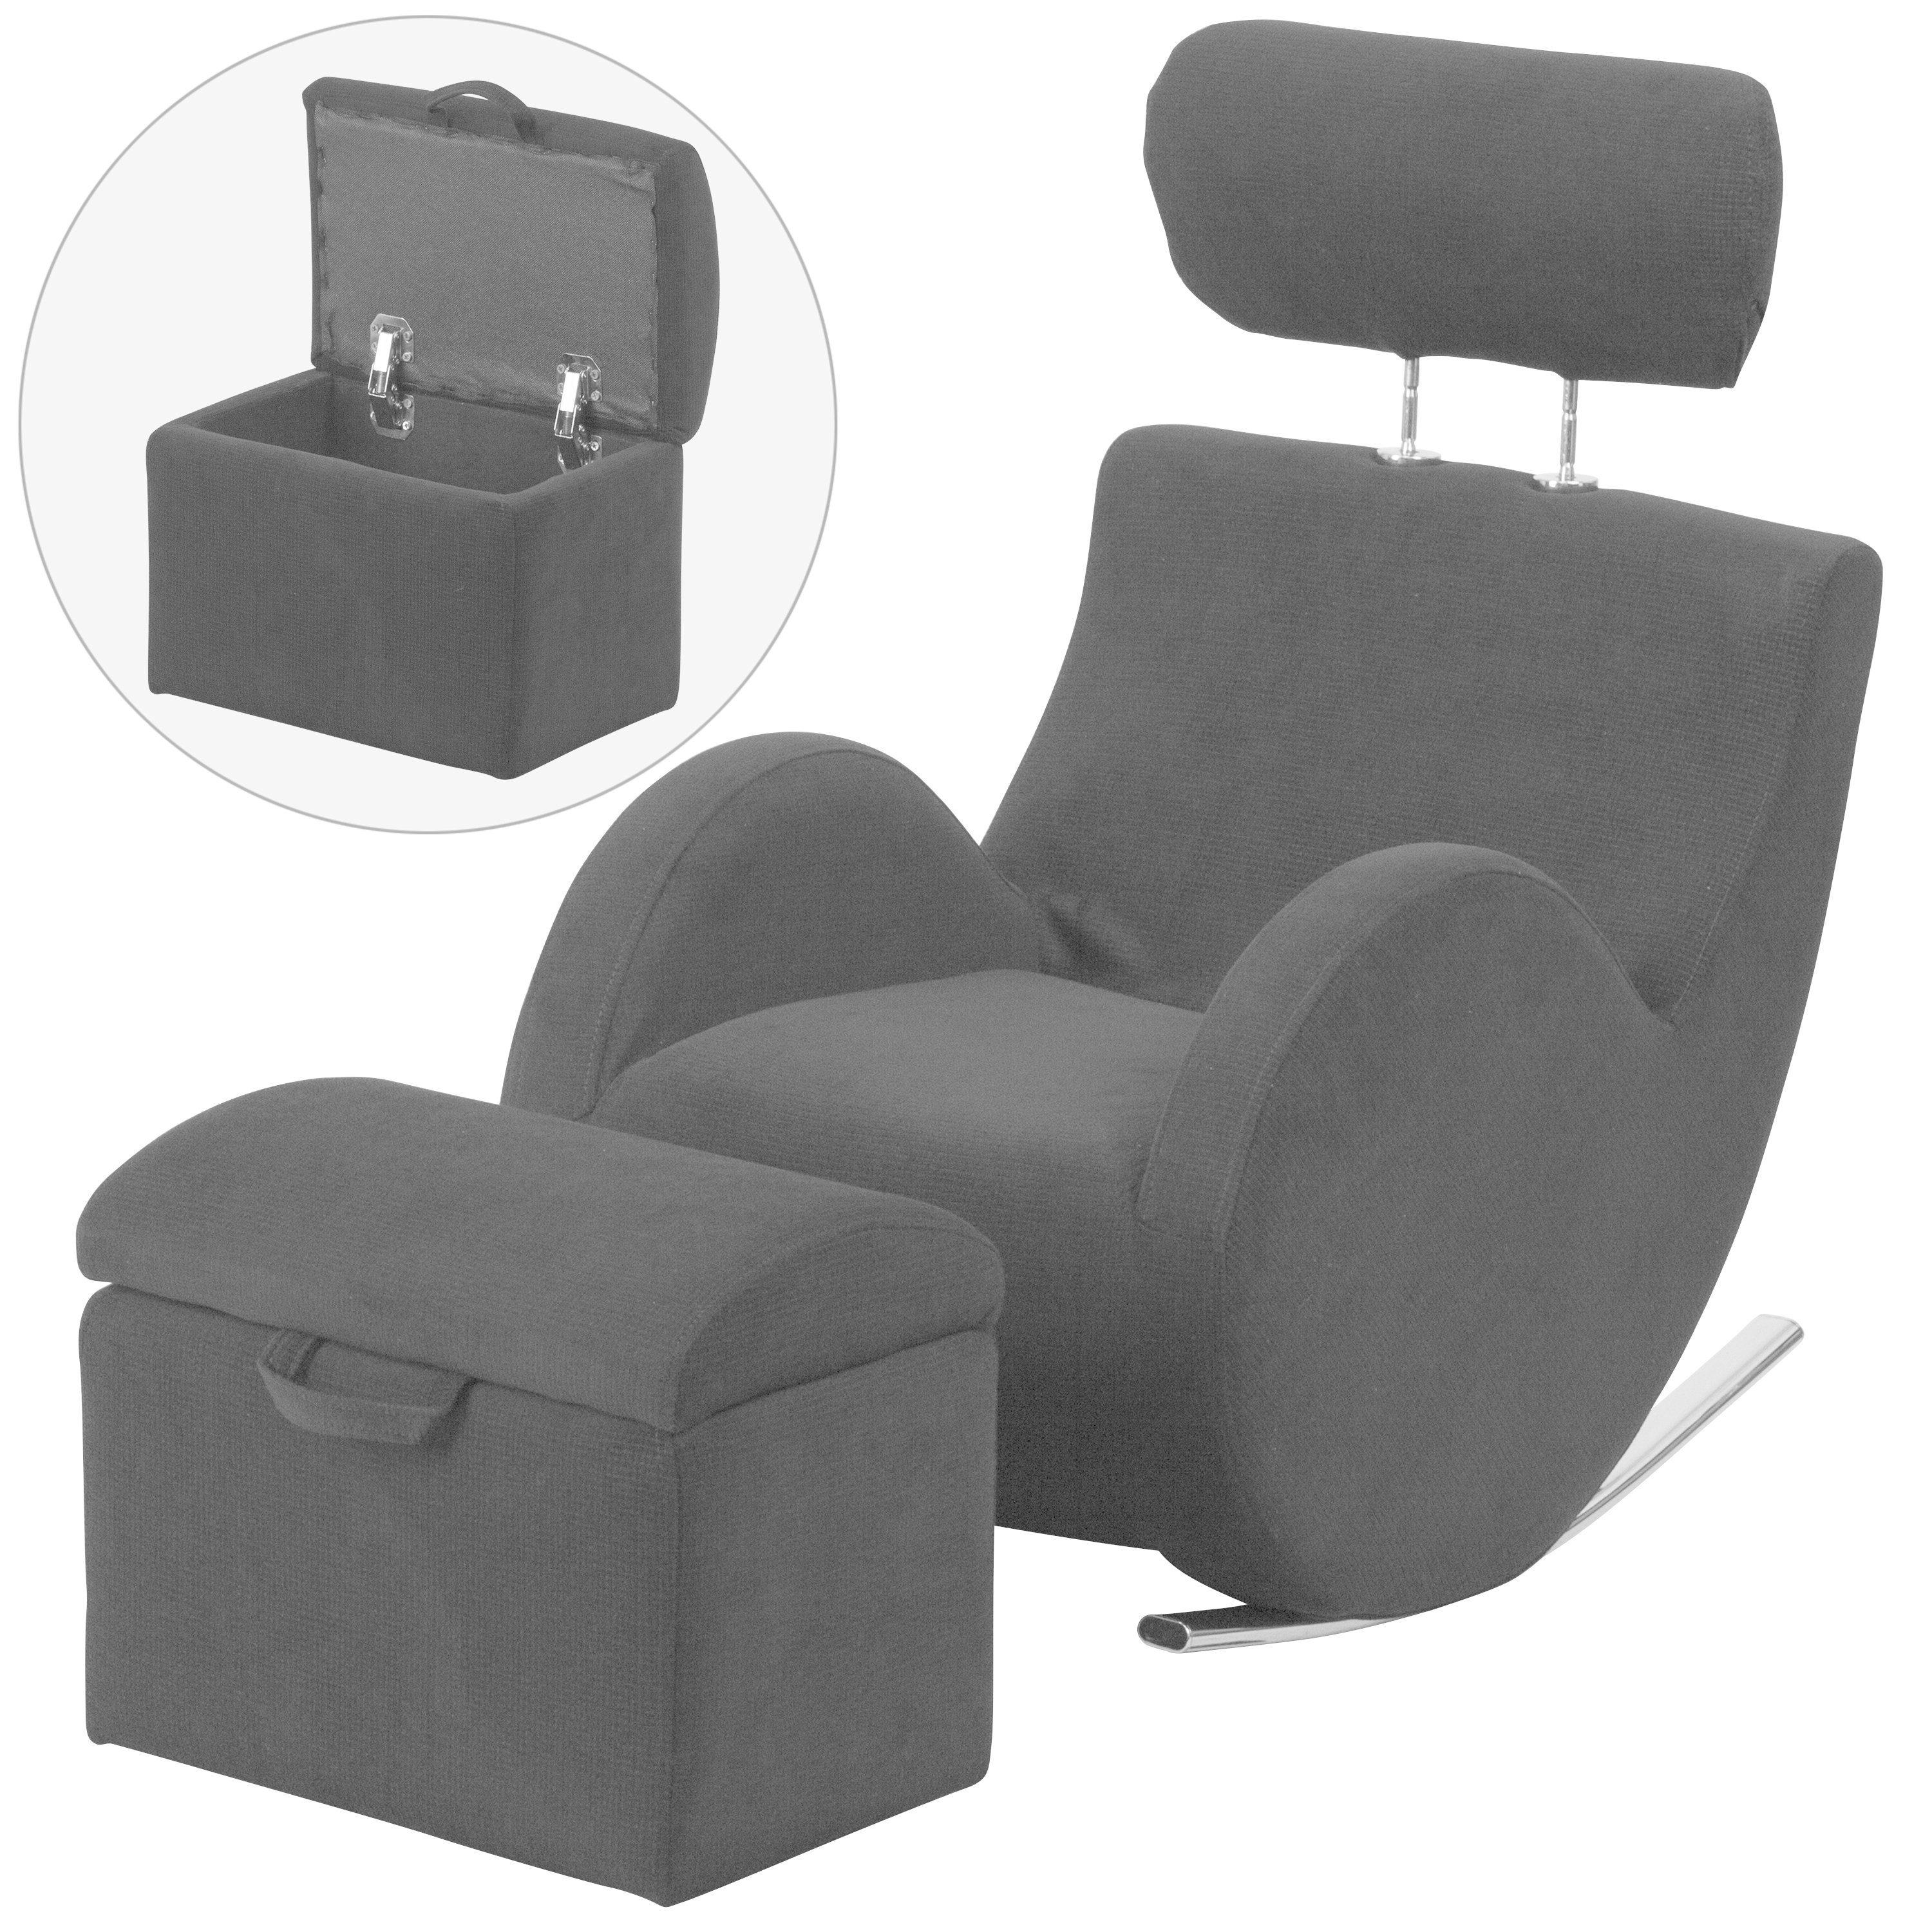 Best And Newest Shop Hercules Kids Rocking Chair And Storage Ottoman Set – Free With Regard To Hercules Grey Swivel Glider Recliners (View 15 of 20)